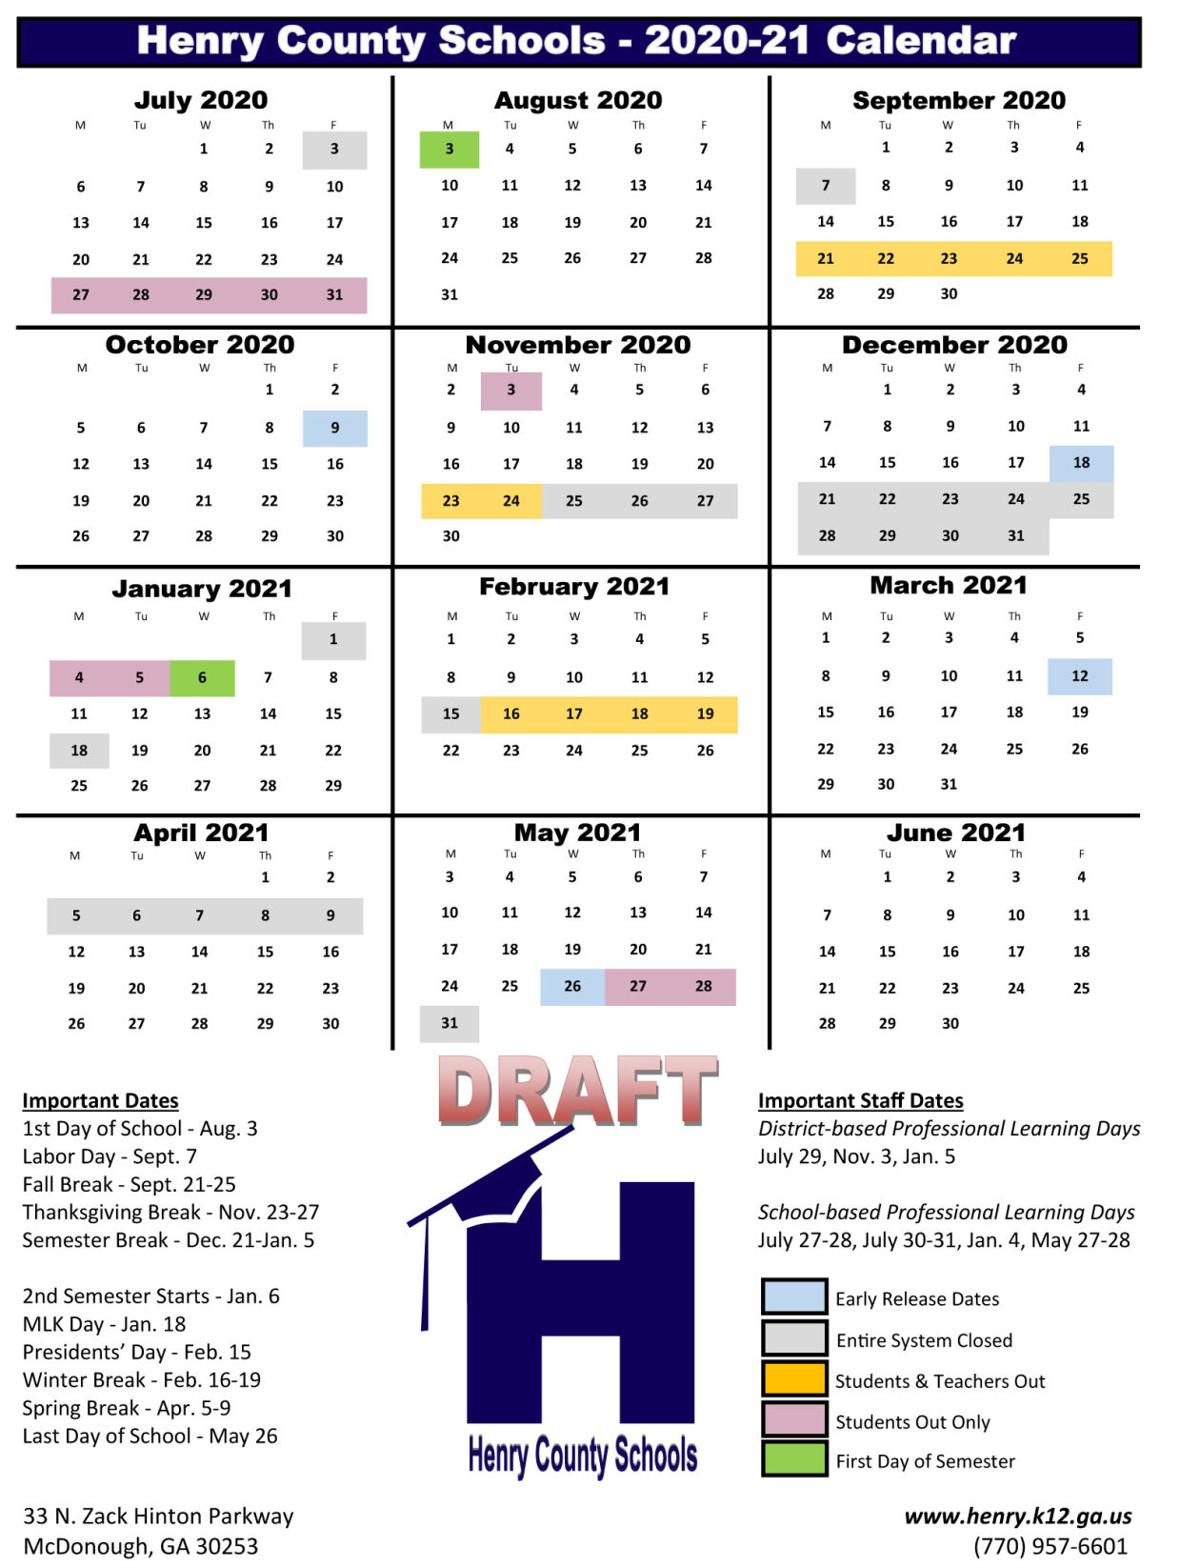 Henry County School Calendar 2020 Future school calendars out for review | News | henryherald.com